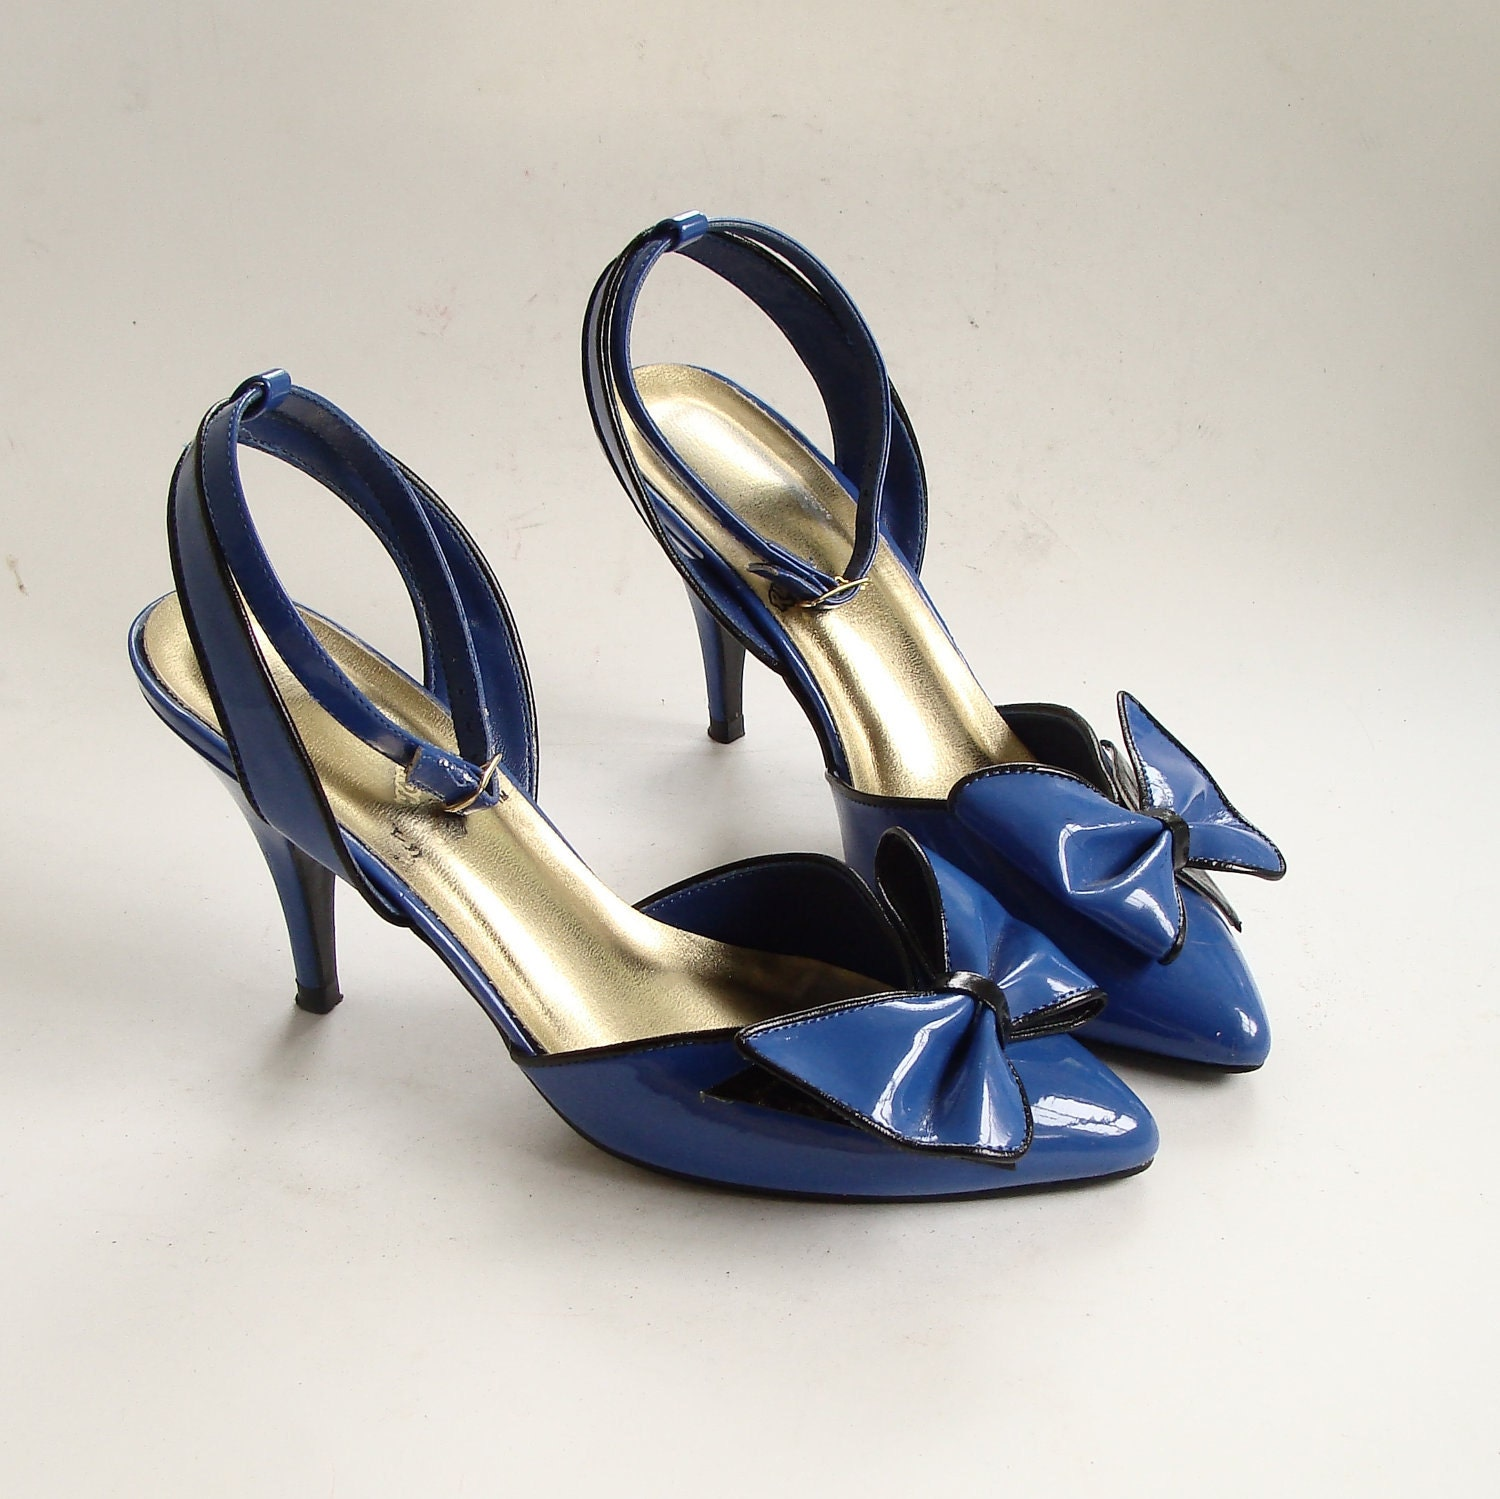 blue heels with bow on back